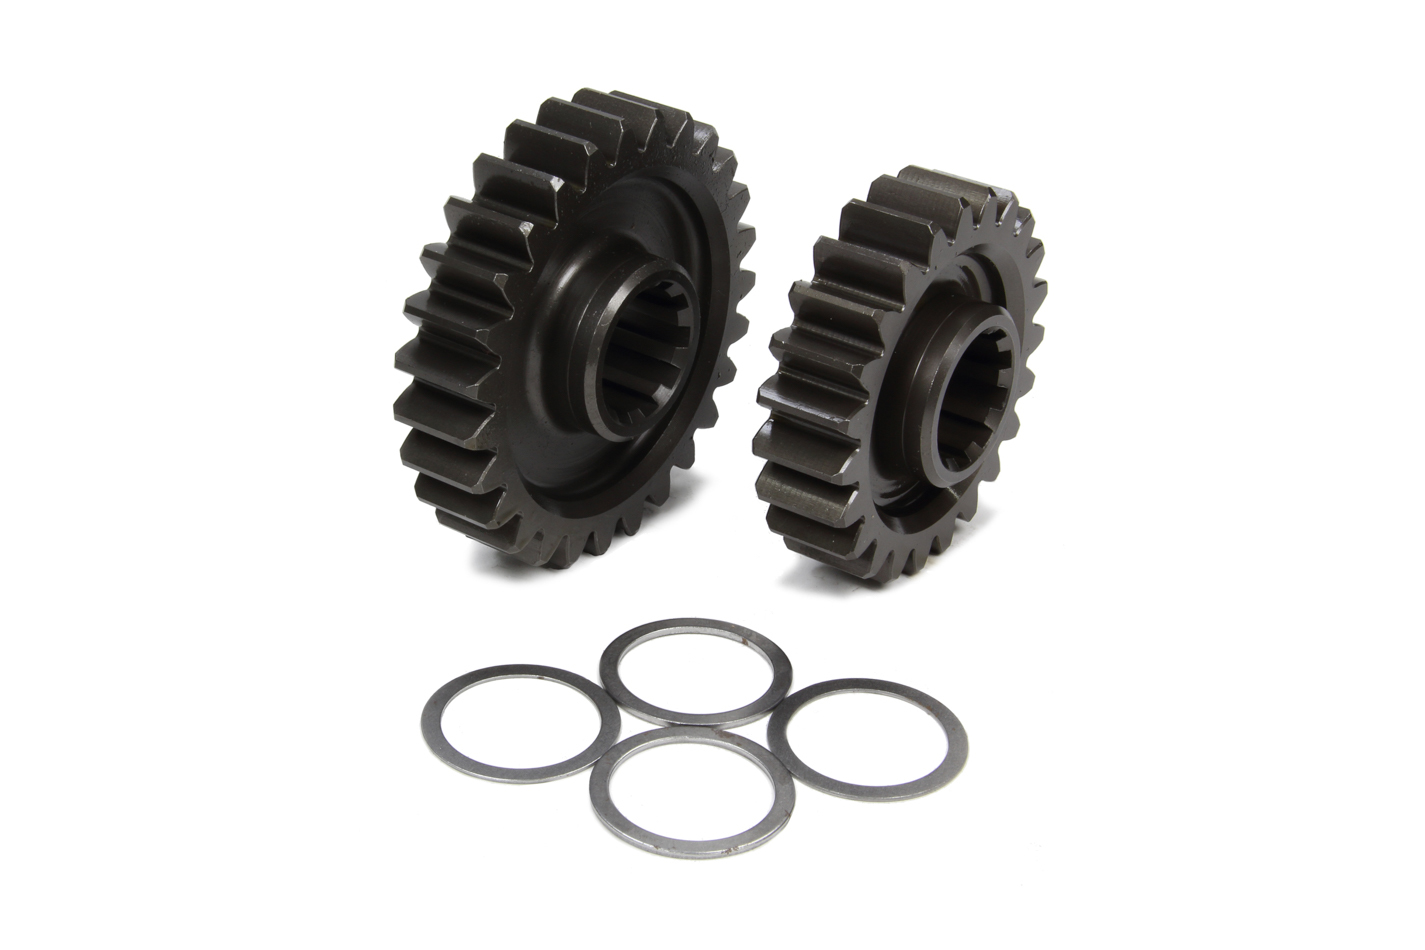 Coleman Machine 207-8C Quick Change Gear Set, Pro-Lite, Set 8C, 10 Spline, 4.11 Ratio 4.83 / 3.50, 4.86 Ratio 5.70 / 4.14, Steel, Each